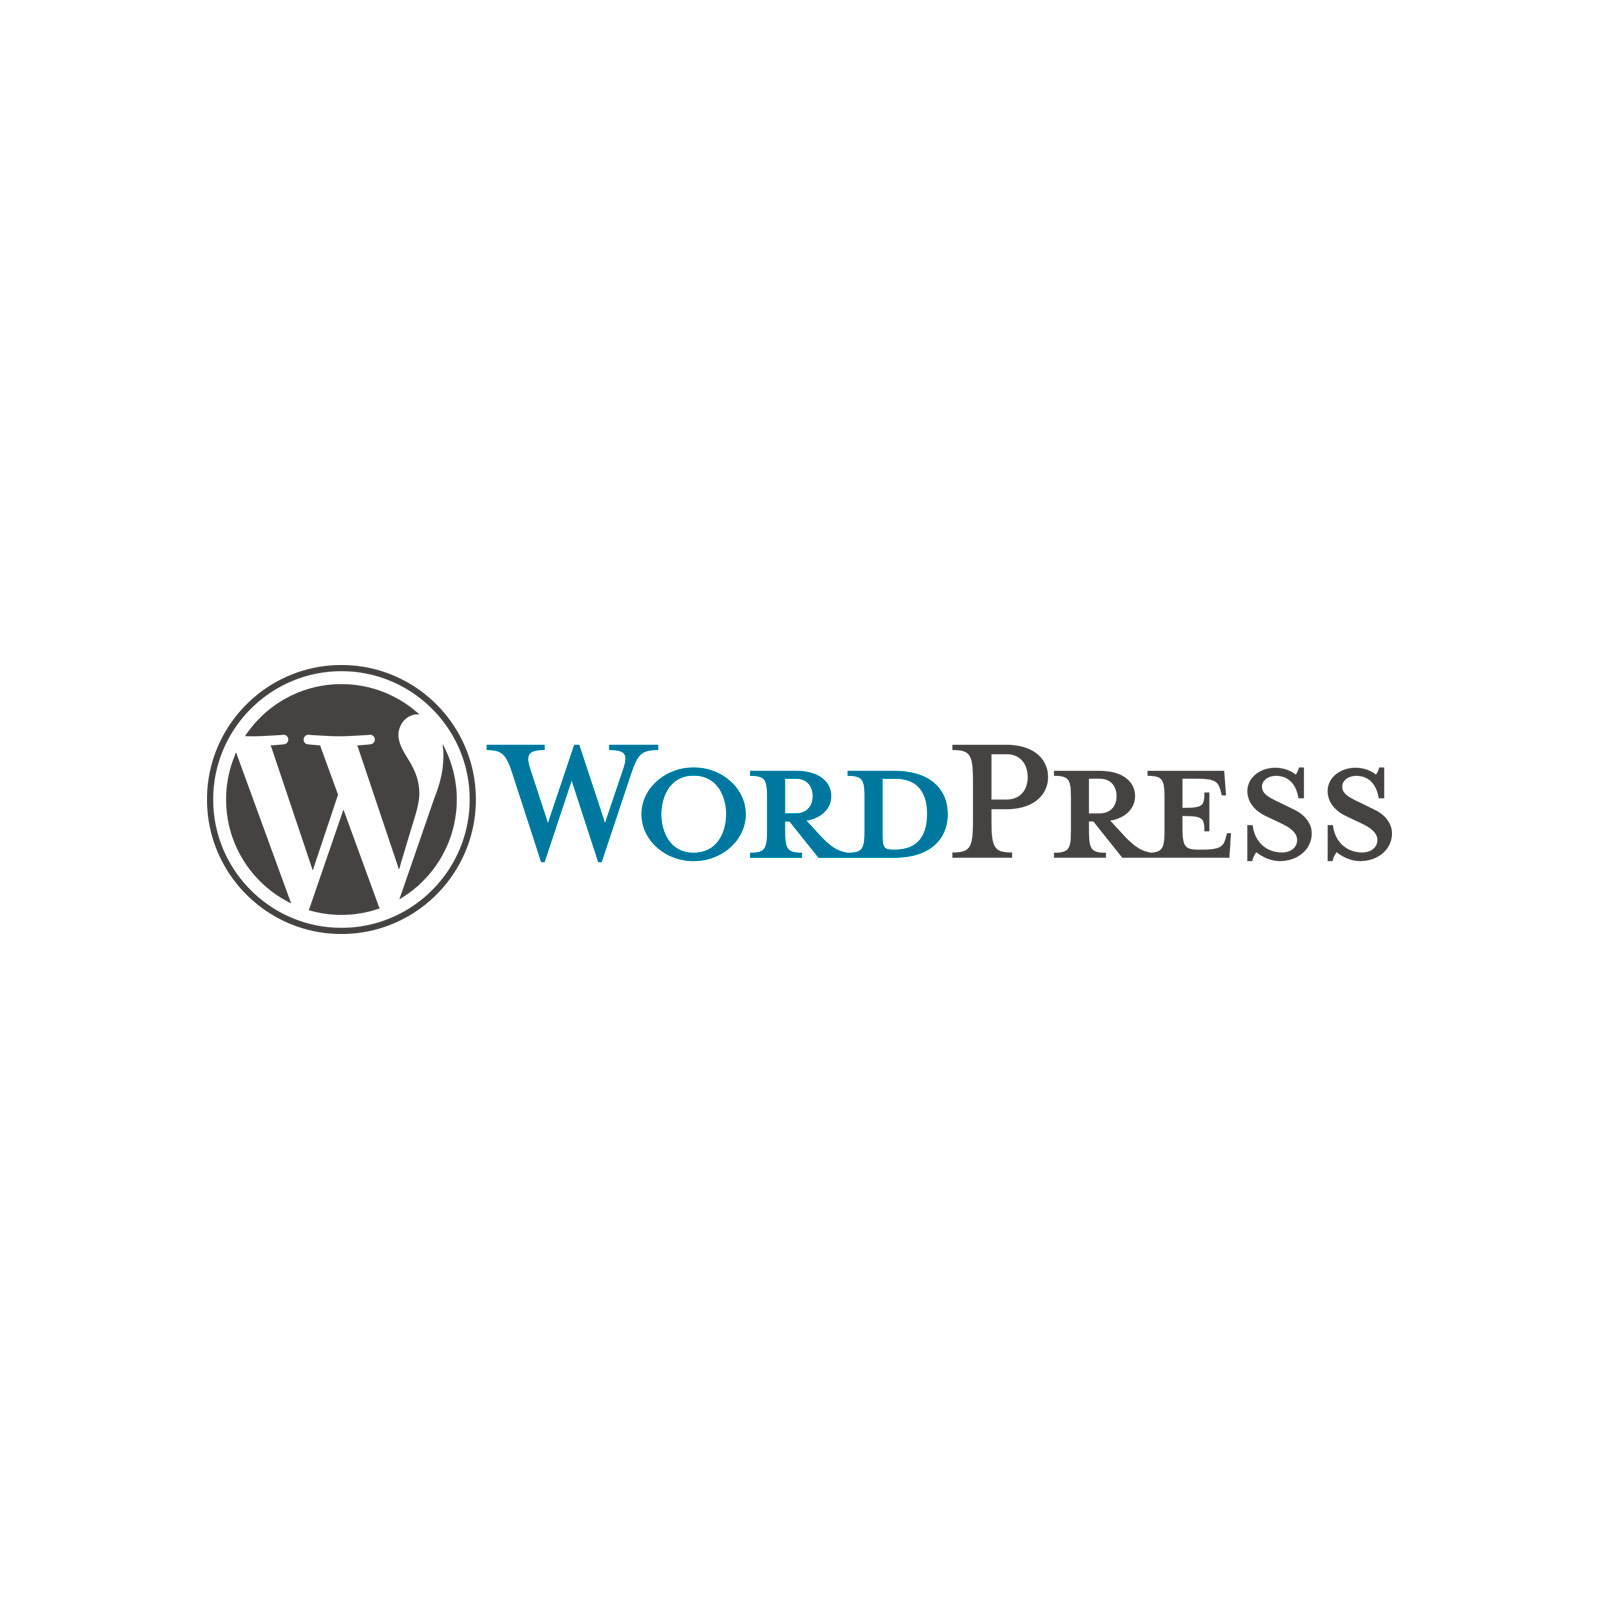 WordPress.com is a blogging platform that is owned and hosted online by Automattic. It is run on a modified version of WordPress, an open source piece of software used by bloggers.